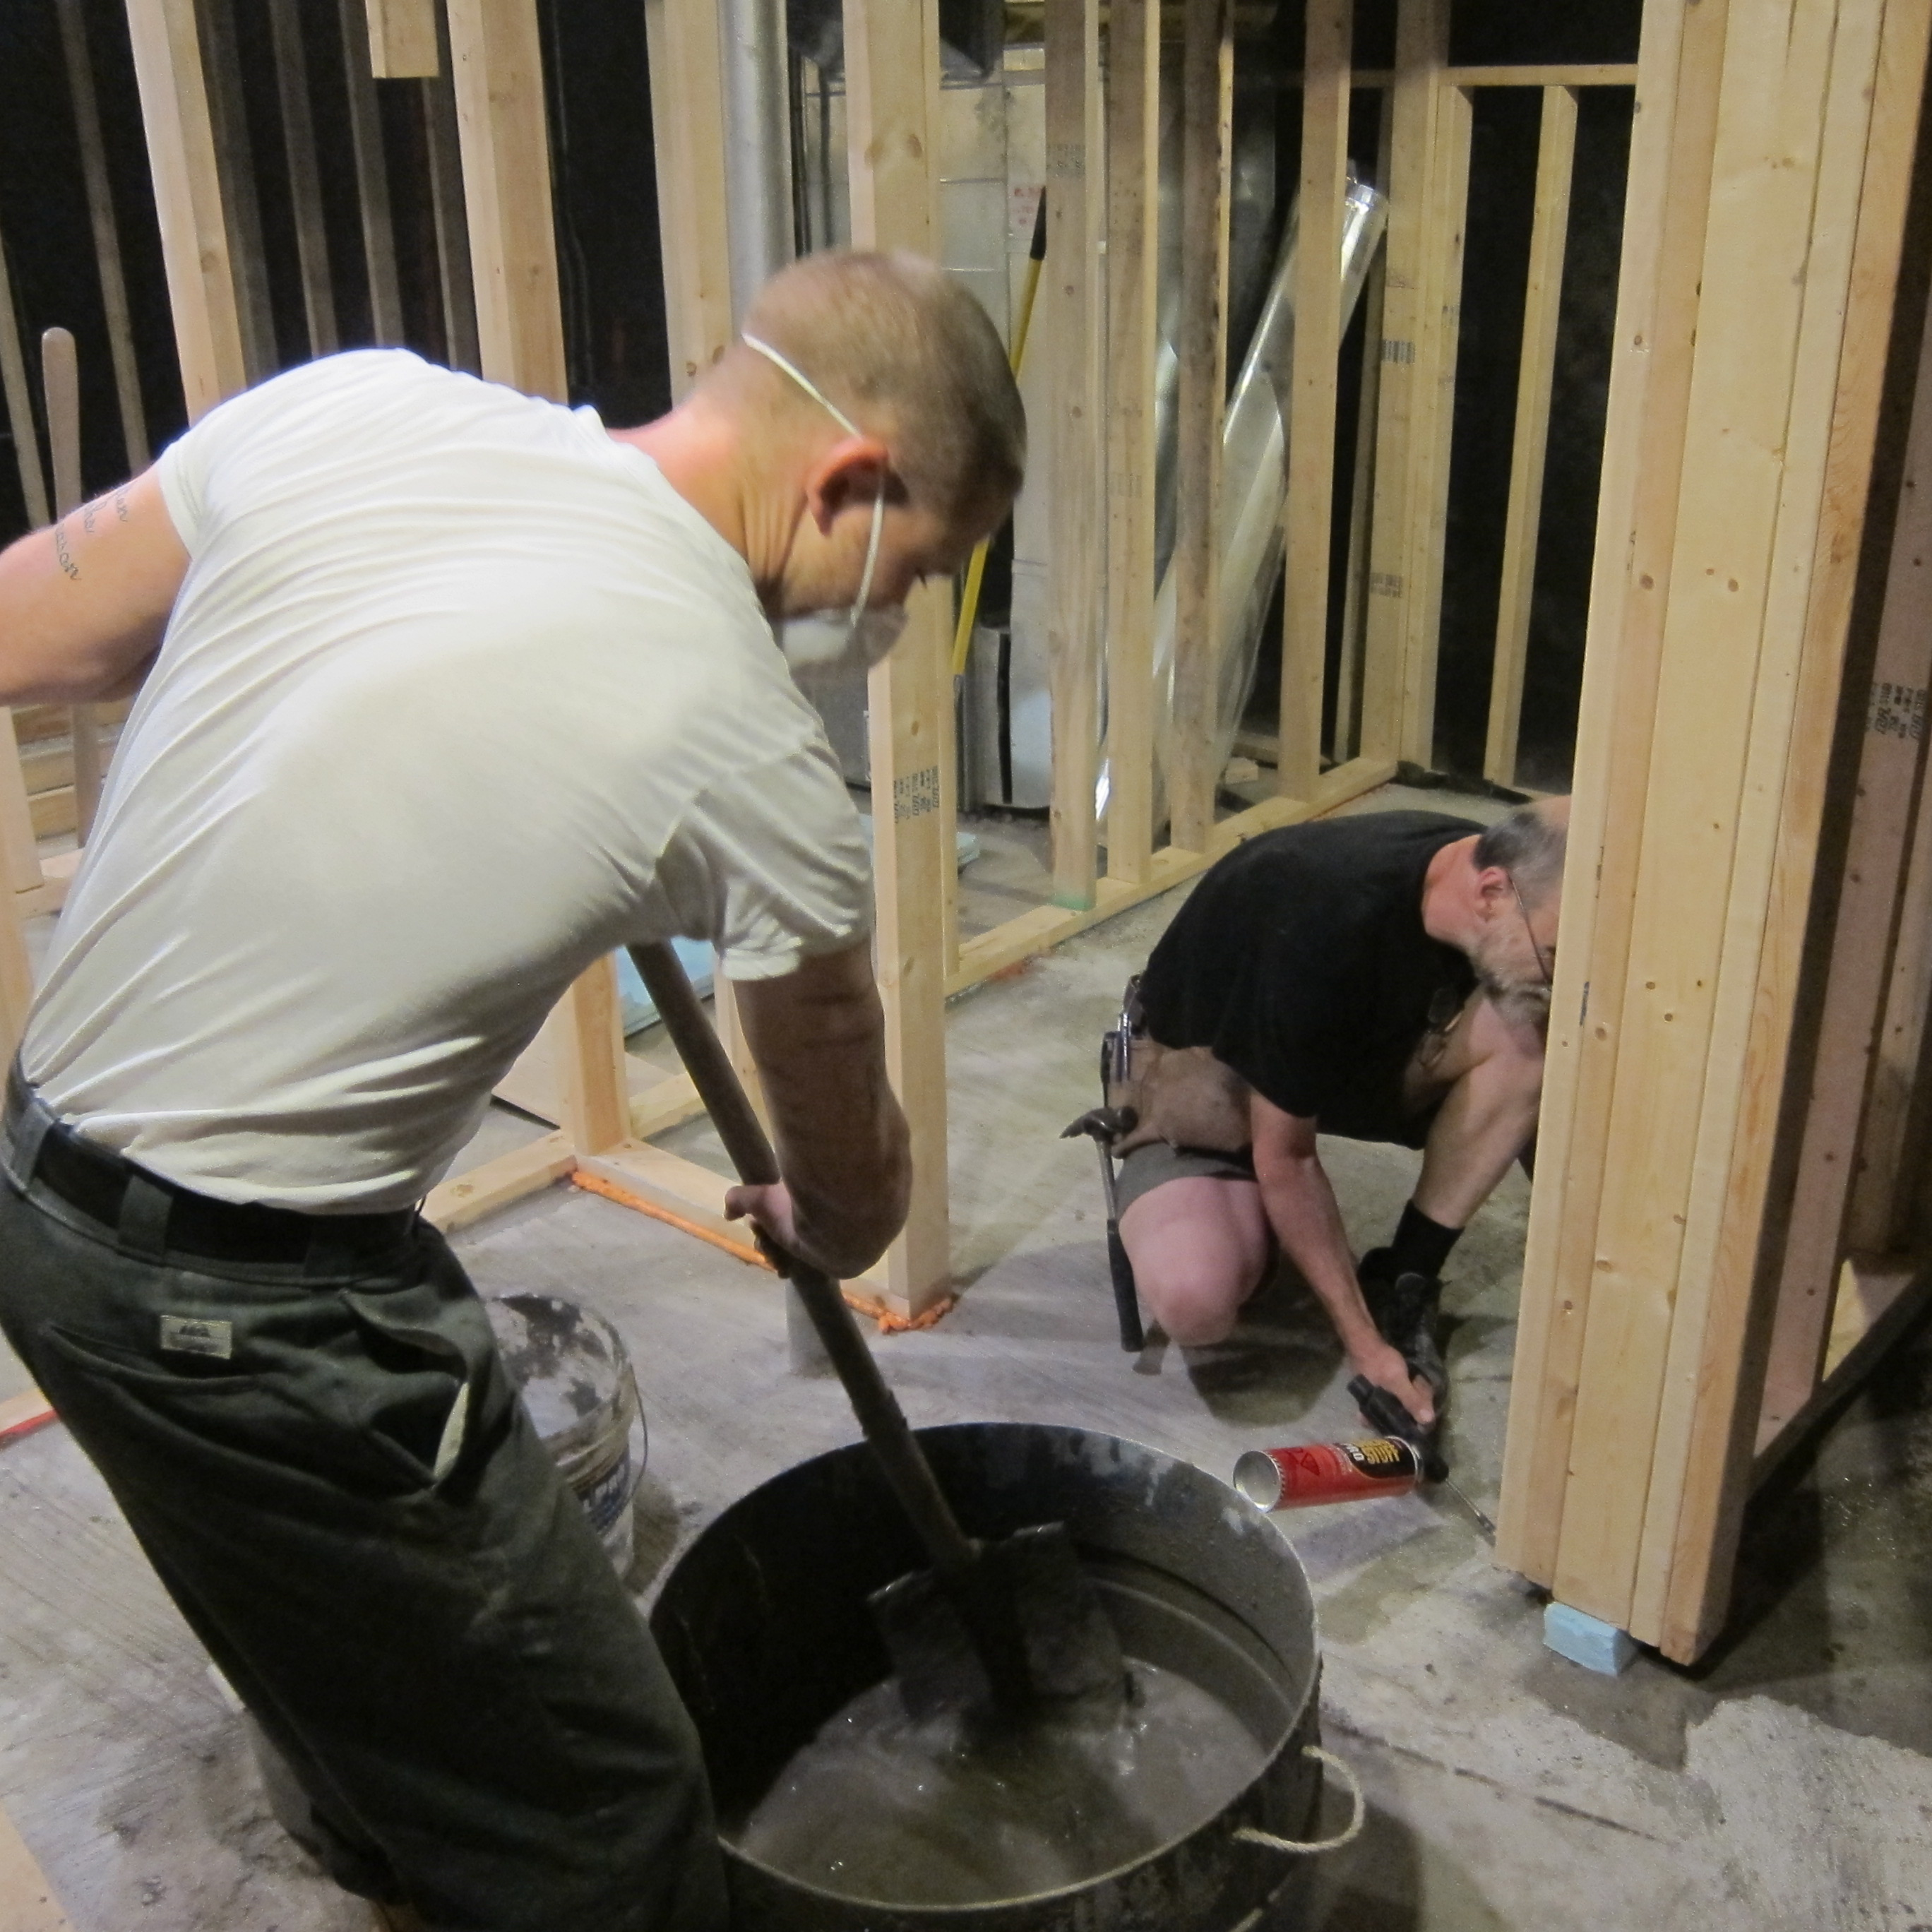 This is an image of two men doing interior construction of a new house.